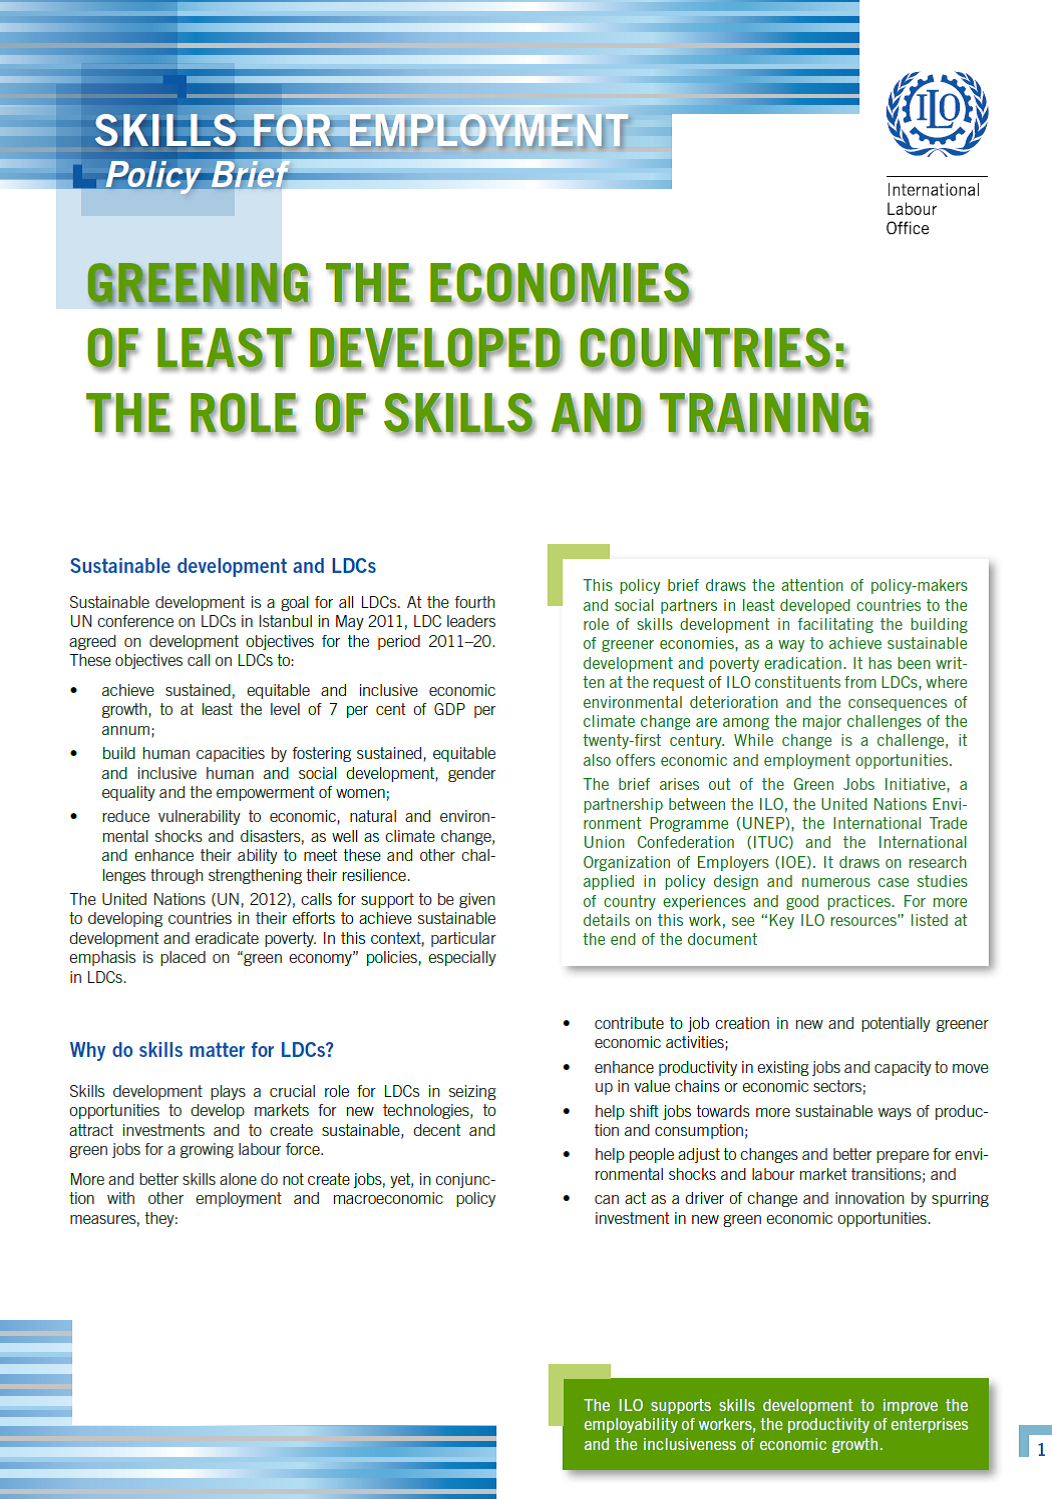 Greening the economies of least developed countries: The role of skills and training